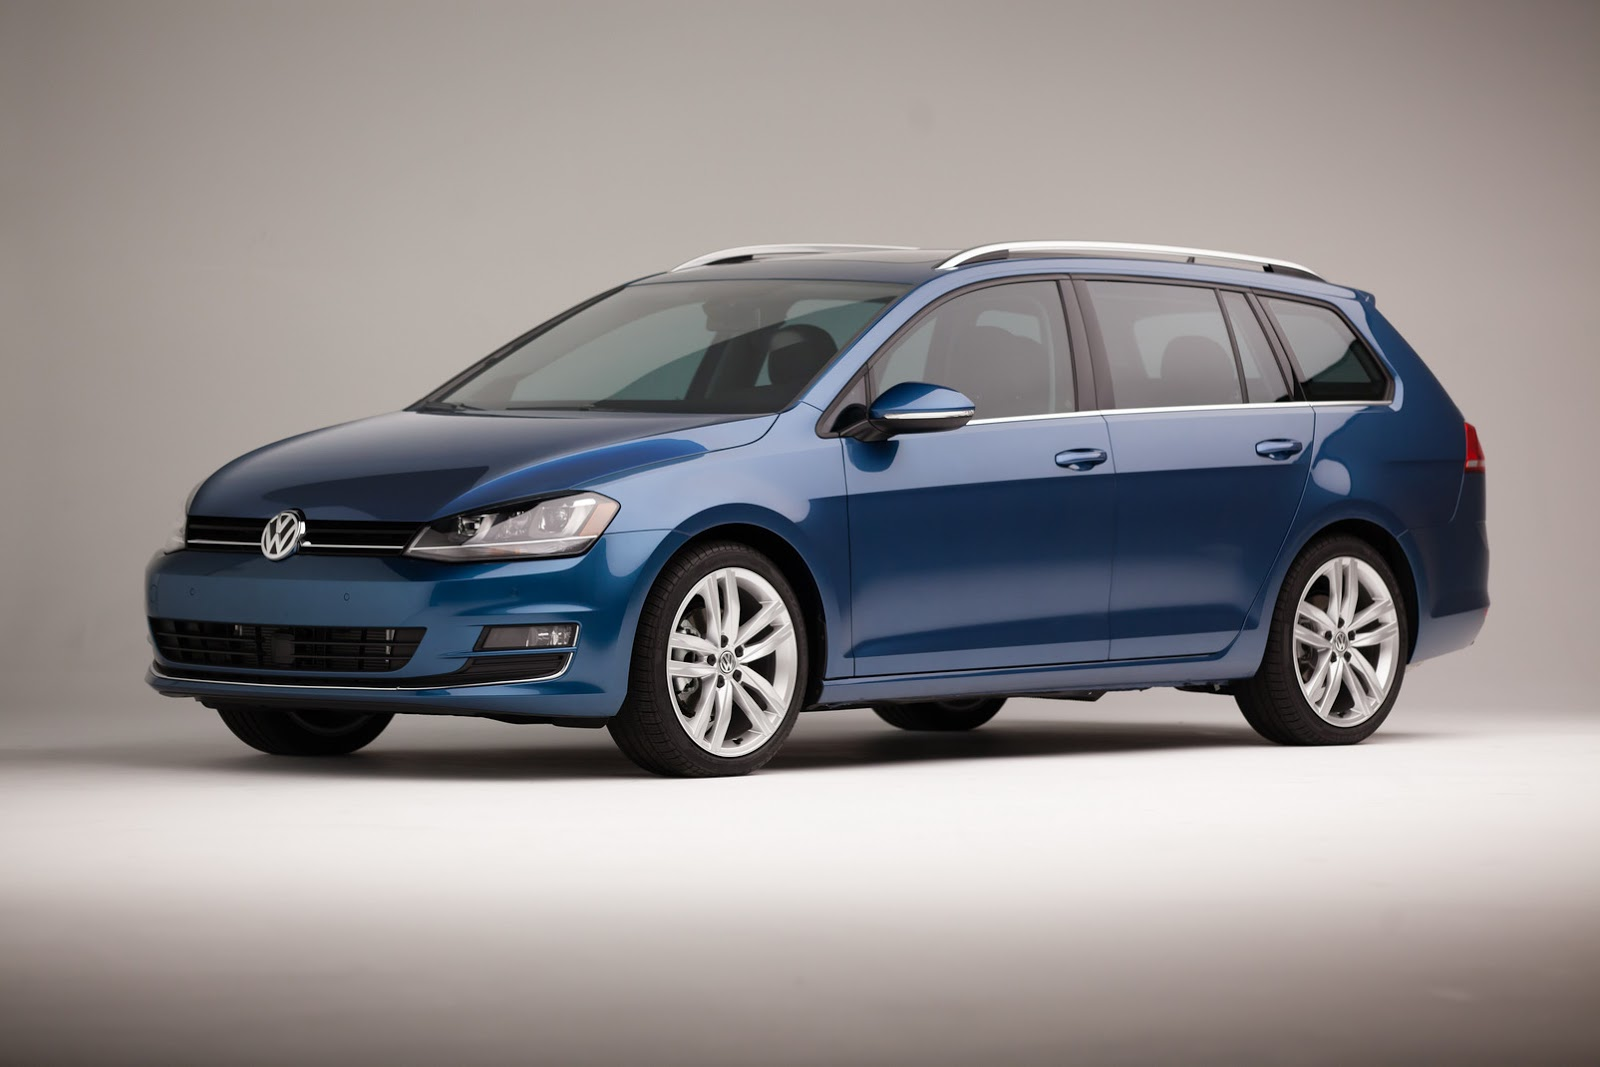 2015 VW Golf Wagon Prices Start from $21,395 - autoevolution